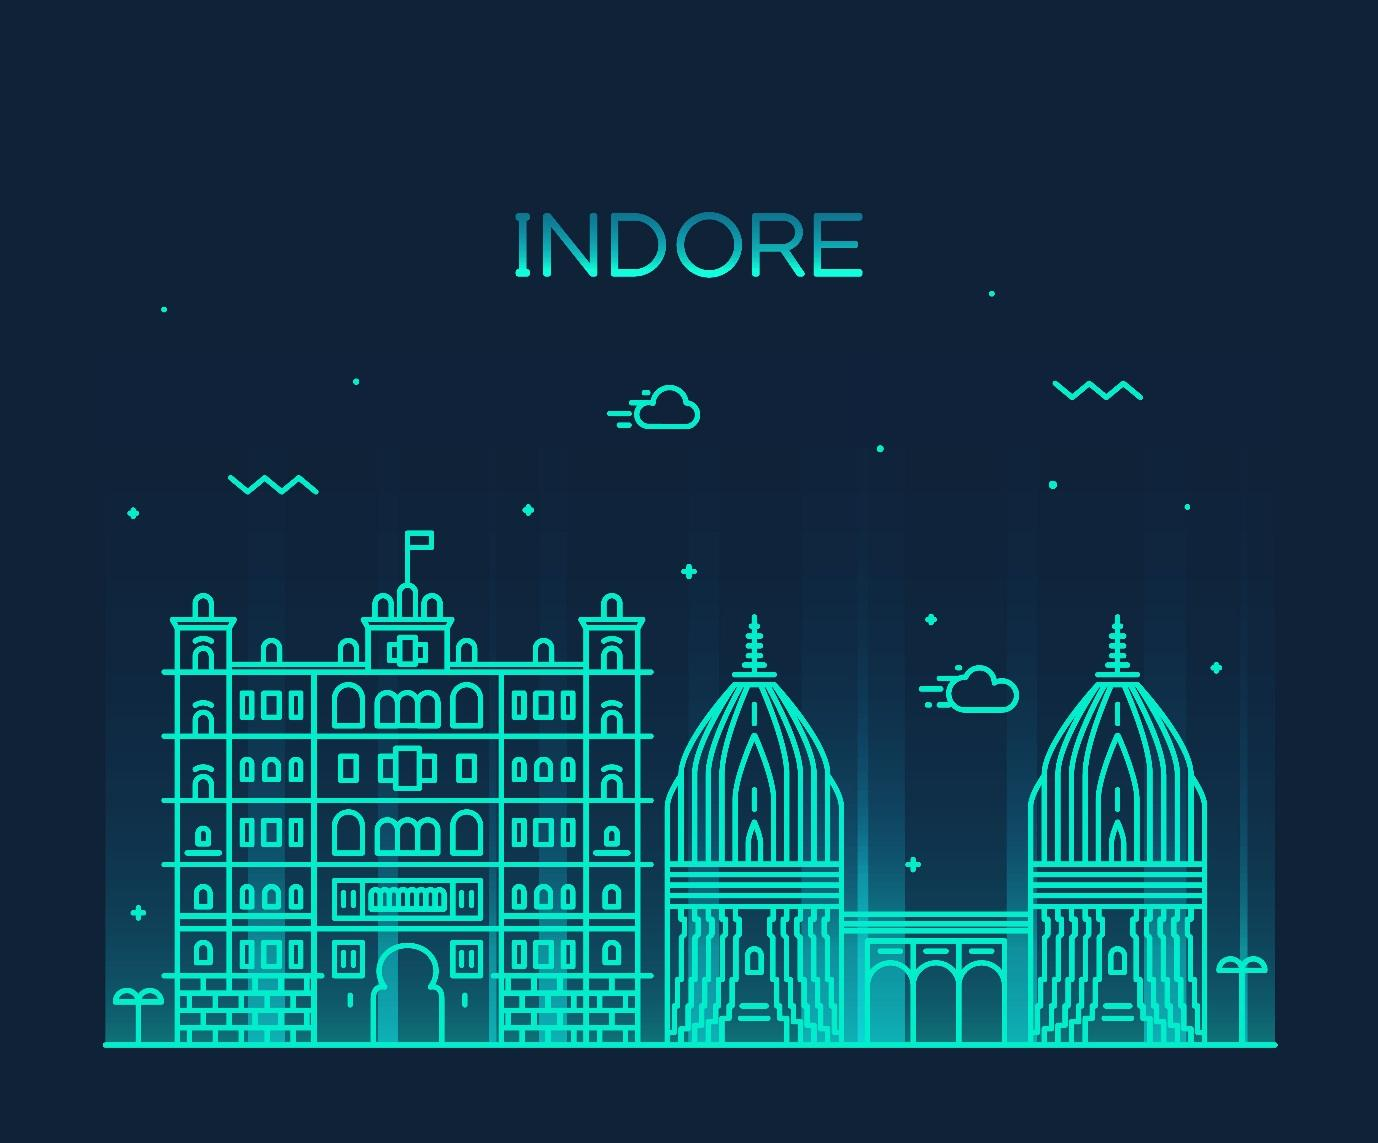 Top 5 Places to Visit in Indore